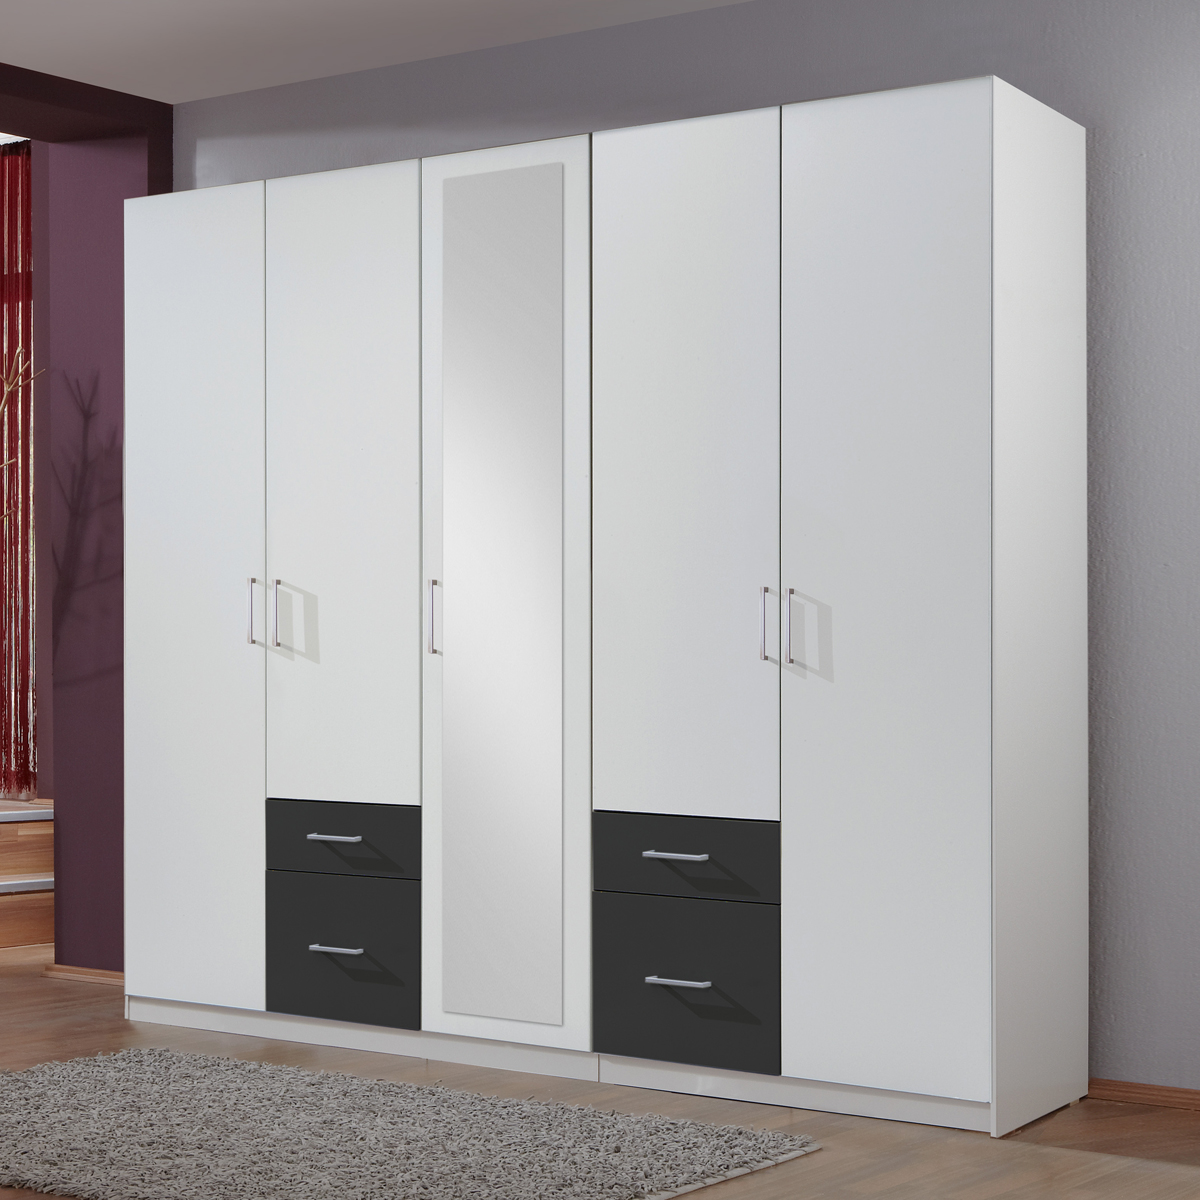 kleiderschrank fly schrank dreht renschrank mit spiegel ebay. Black Bedroom Furniture Sets. Home Design Ideas